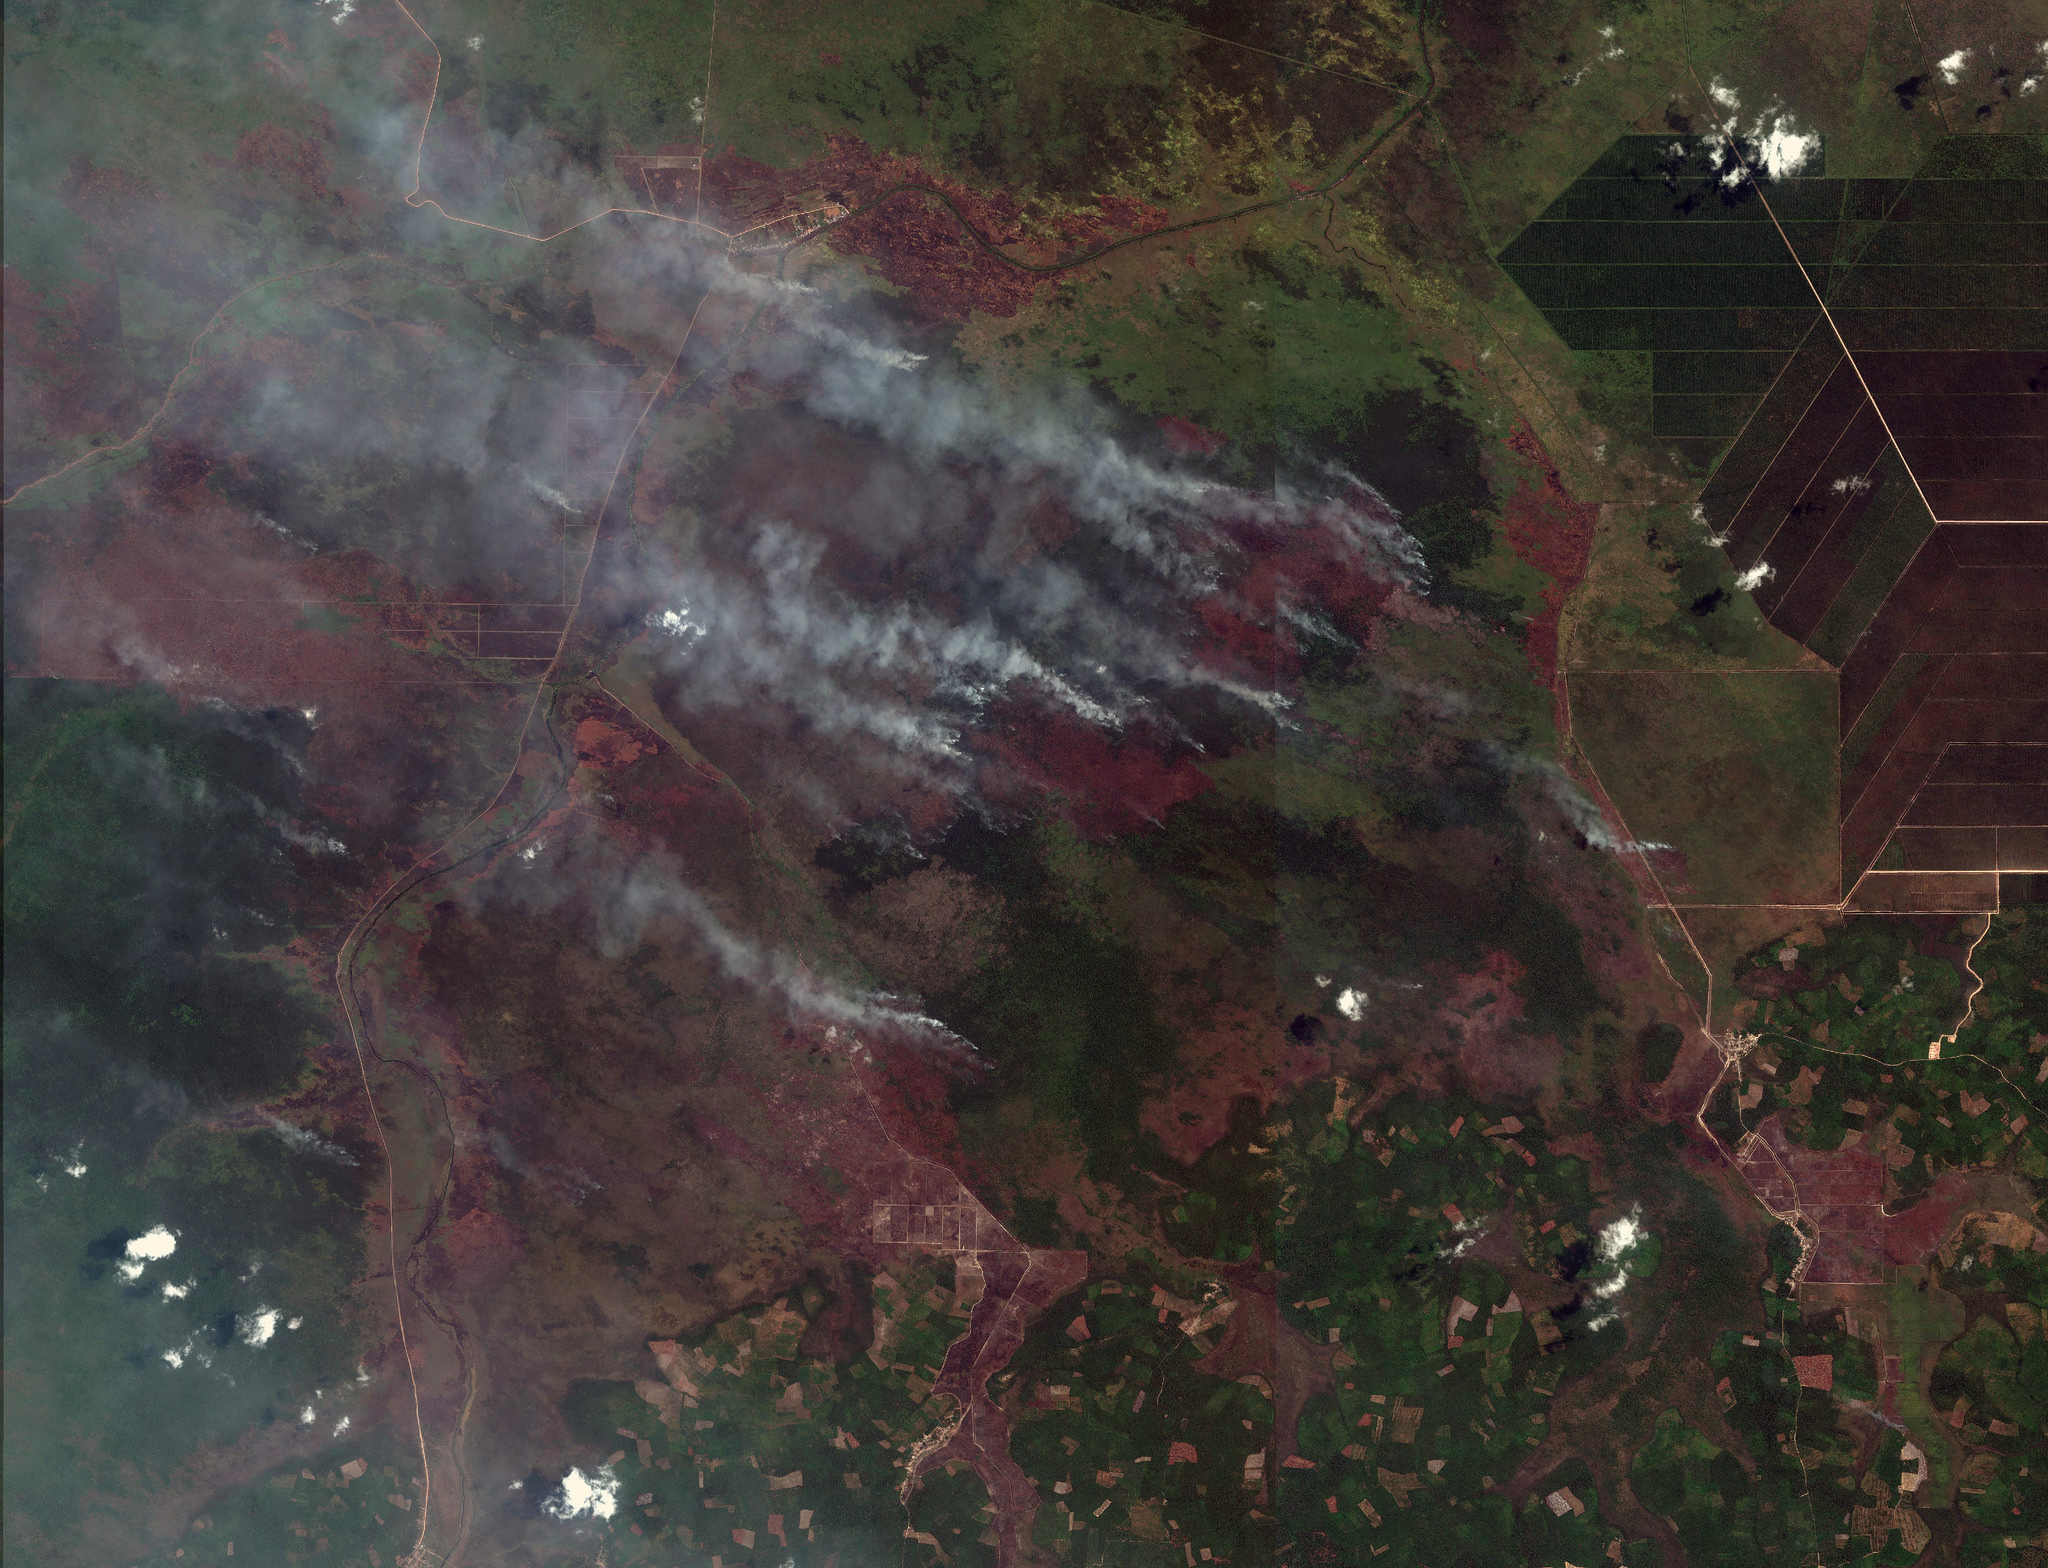 <p>Large active fires on cleared or severely degraded, previously forest land in South Sumatra on September 10th were captured in this image by Digital Globe's WorldView-2 satellite. (Lat -3.39, Lon 105.50; view active fires in this location on GFW Fires)</p>